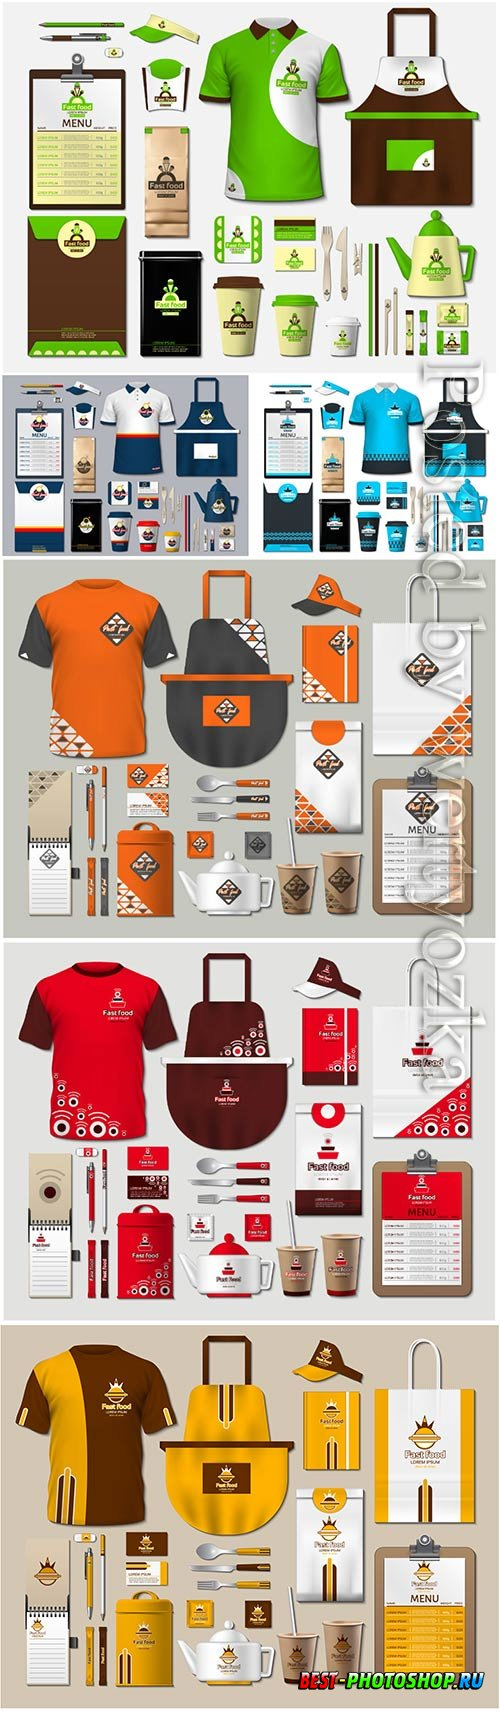 Coffee shop stationery with design